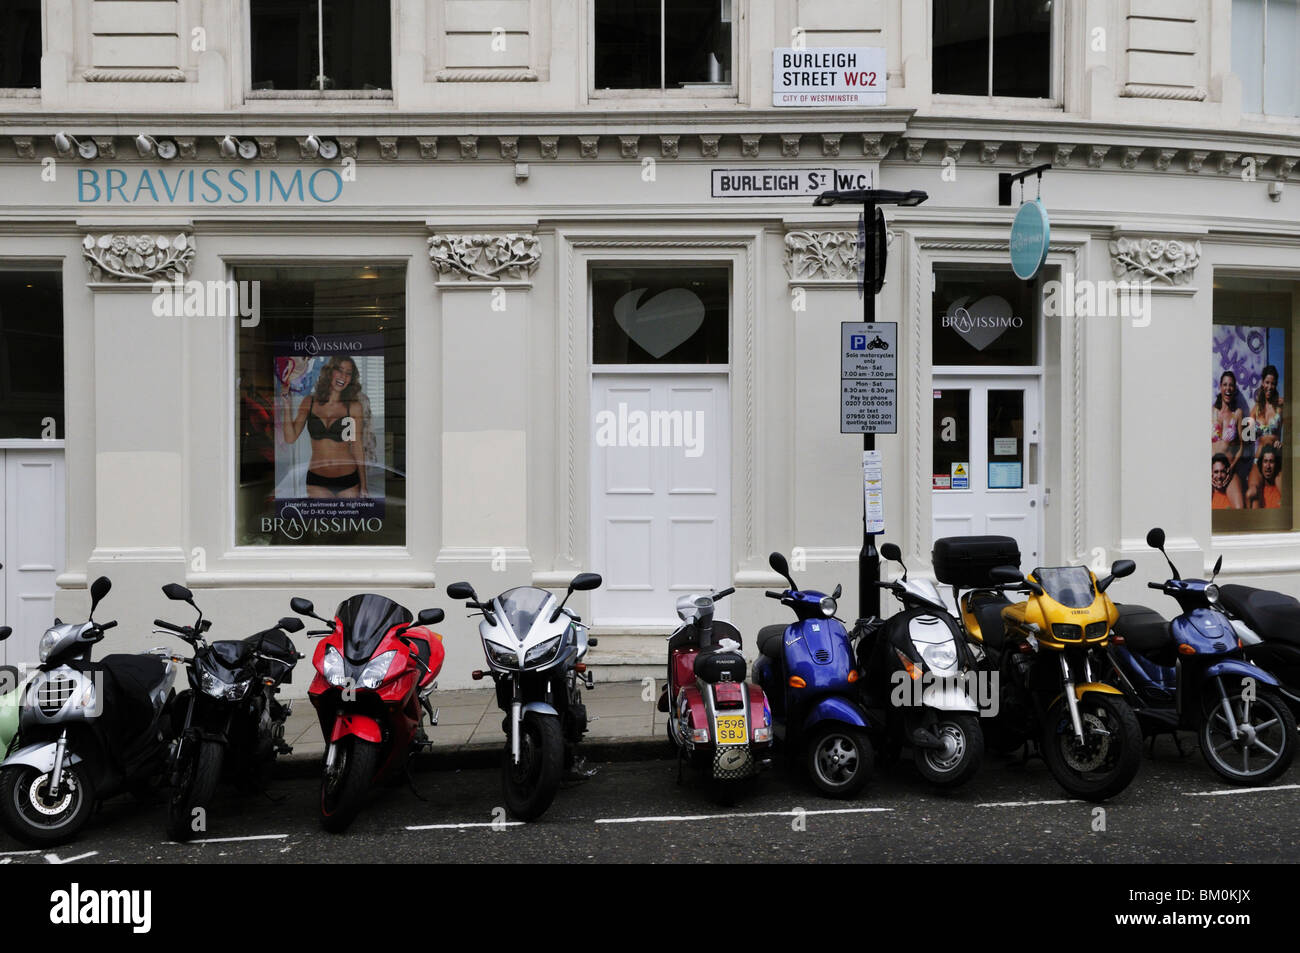 Scooters Parked outside Bravissimo, Burleigh Street, Westminster, London, England, UK - Stock Image